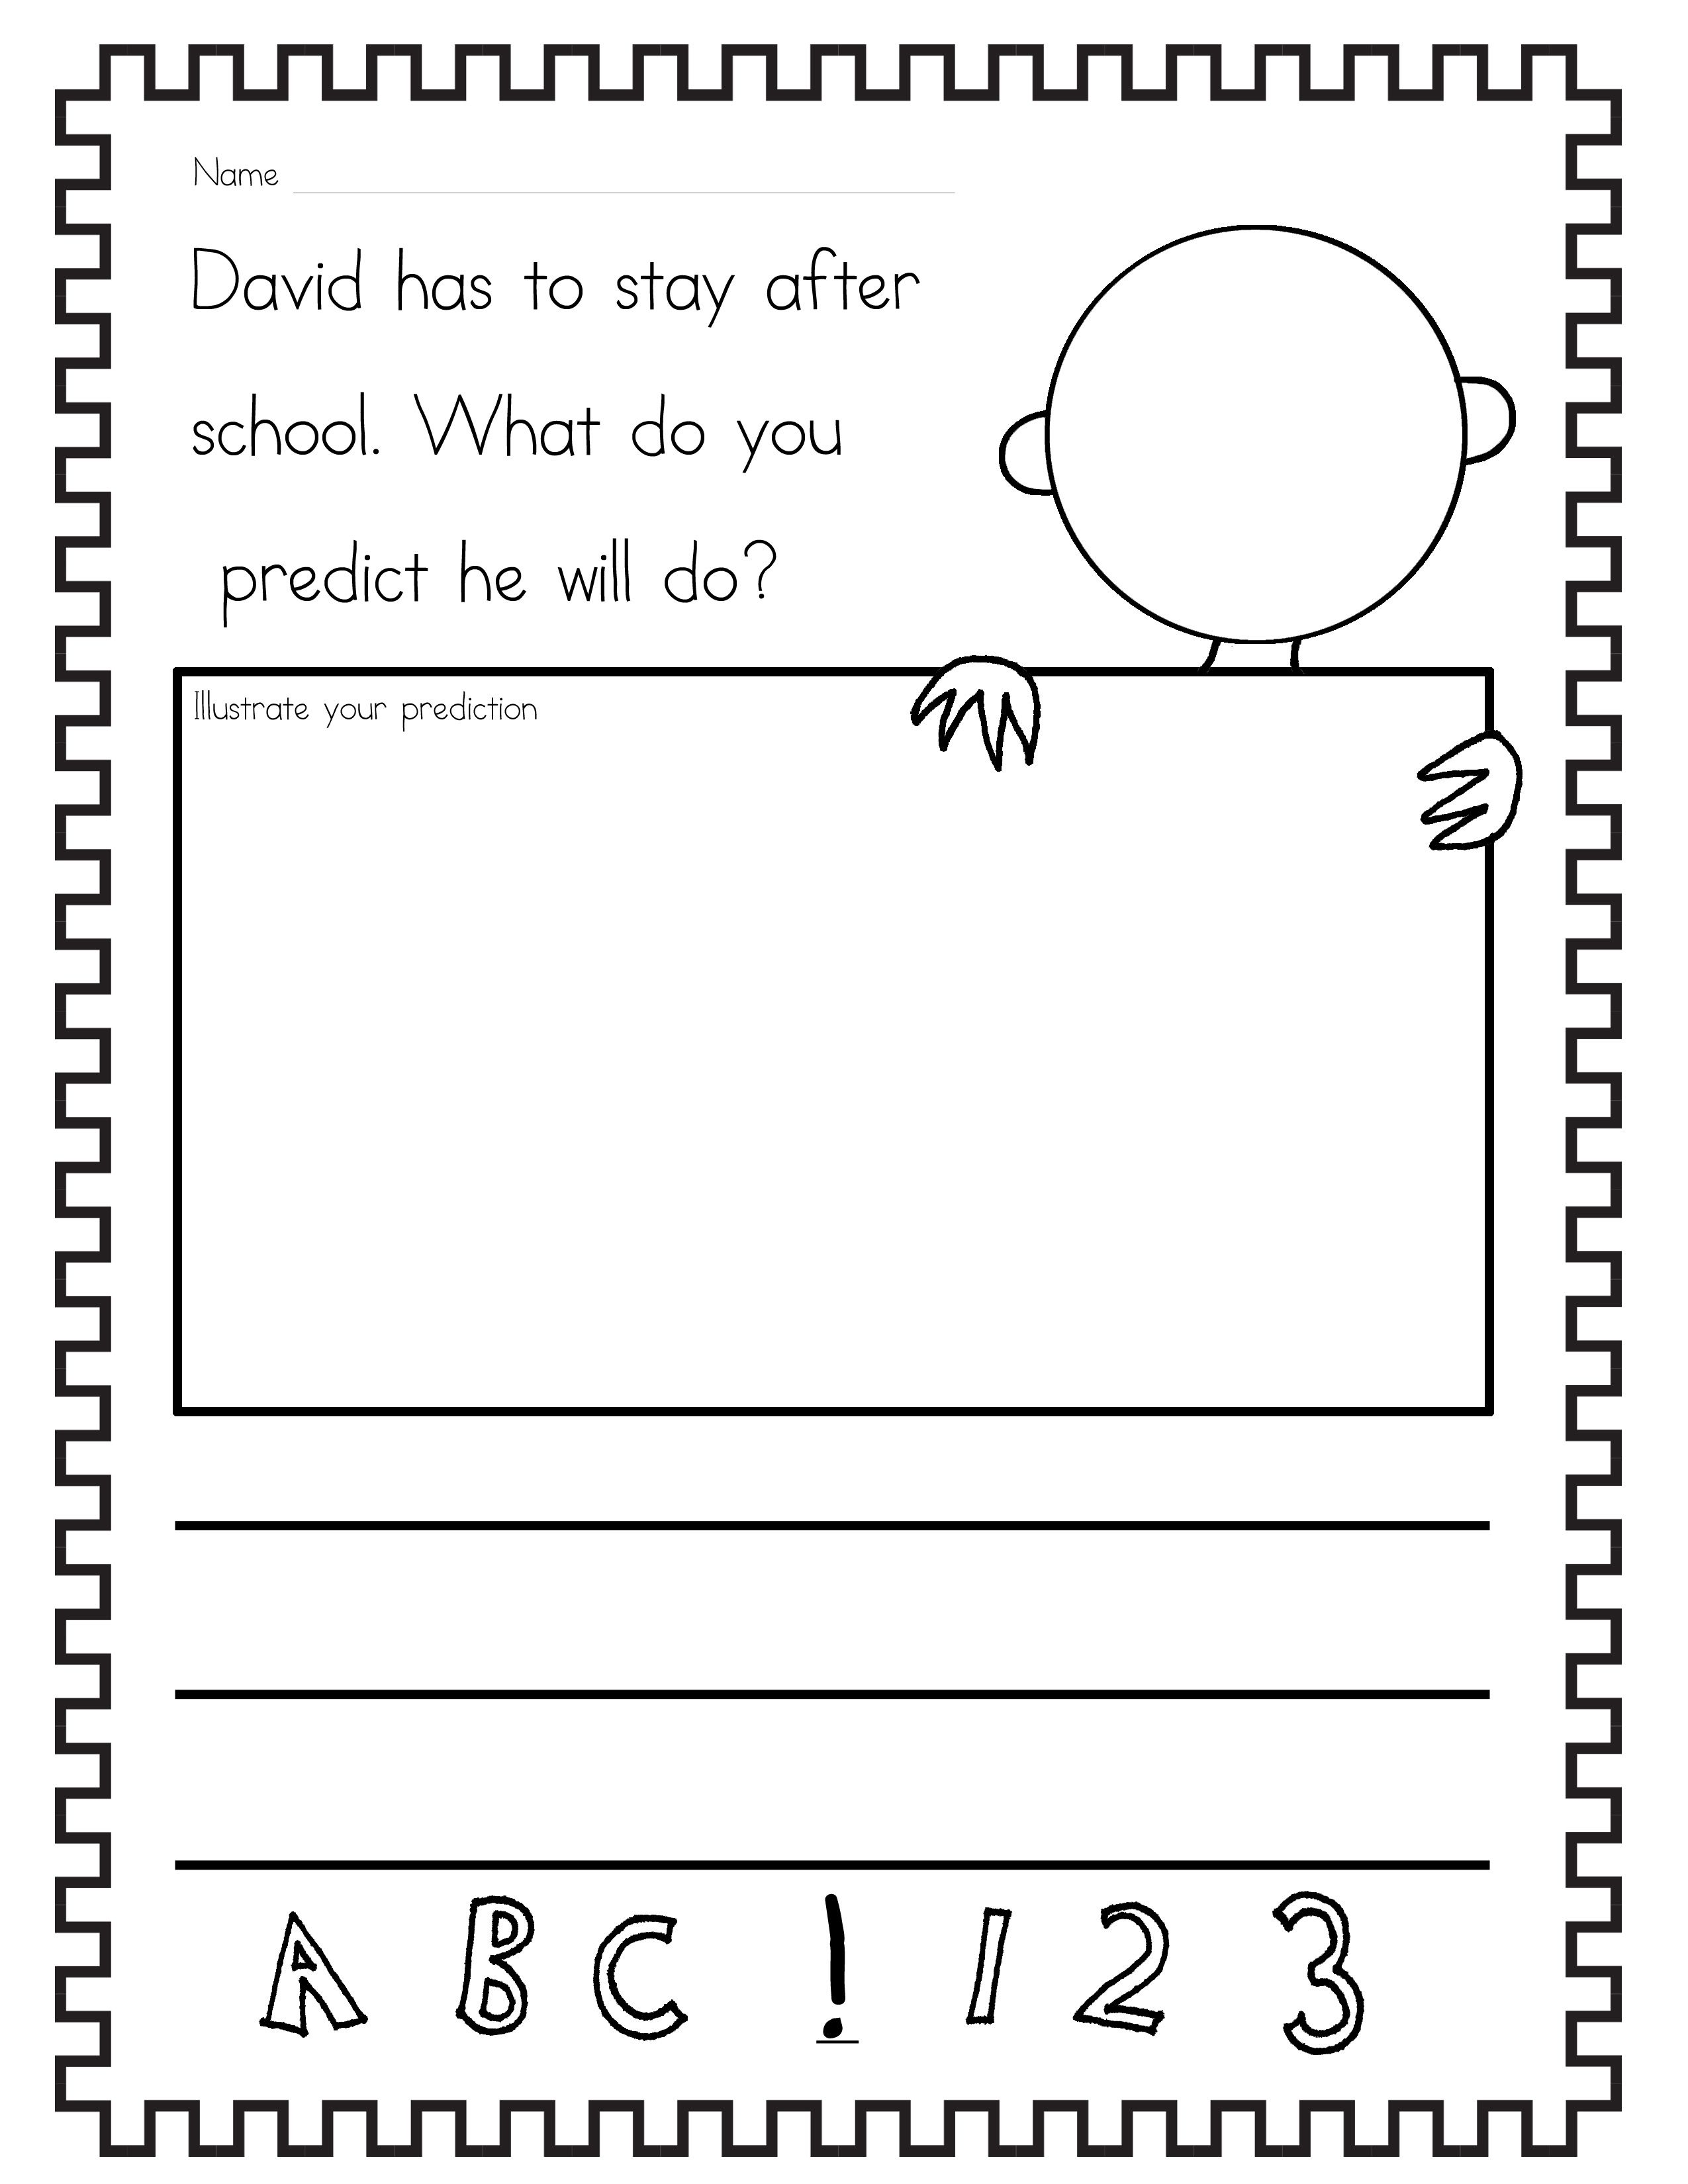 Free David Goes To School Prediction Worksheet I Started